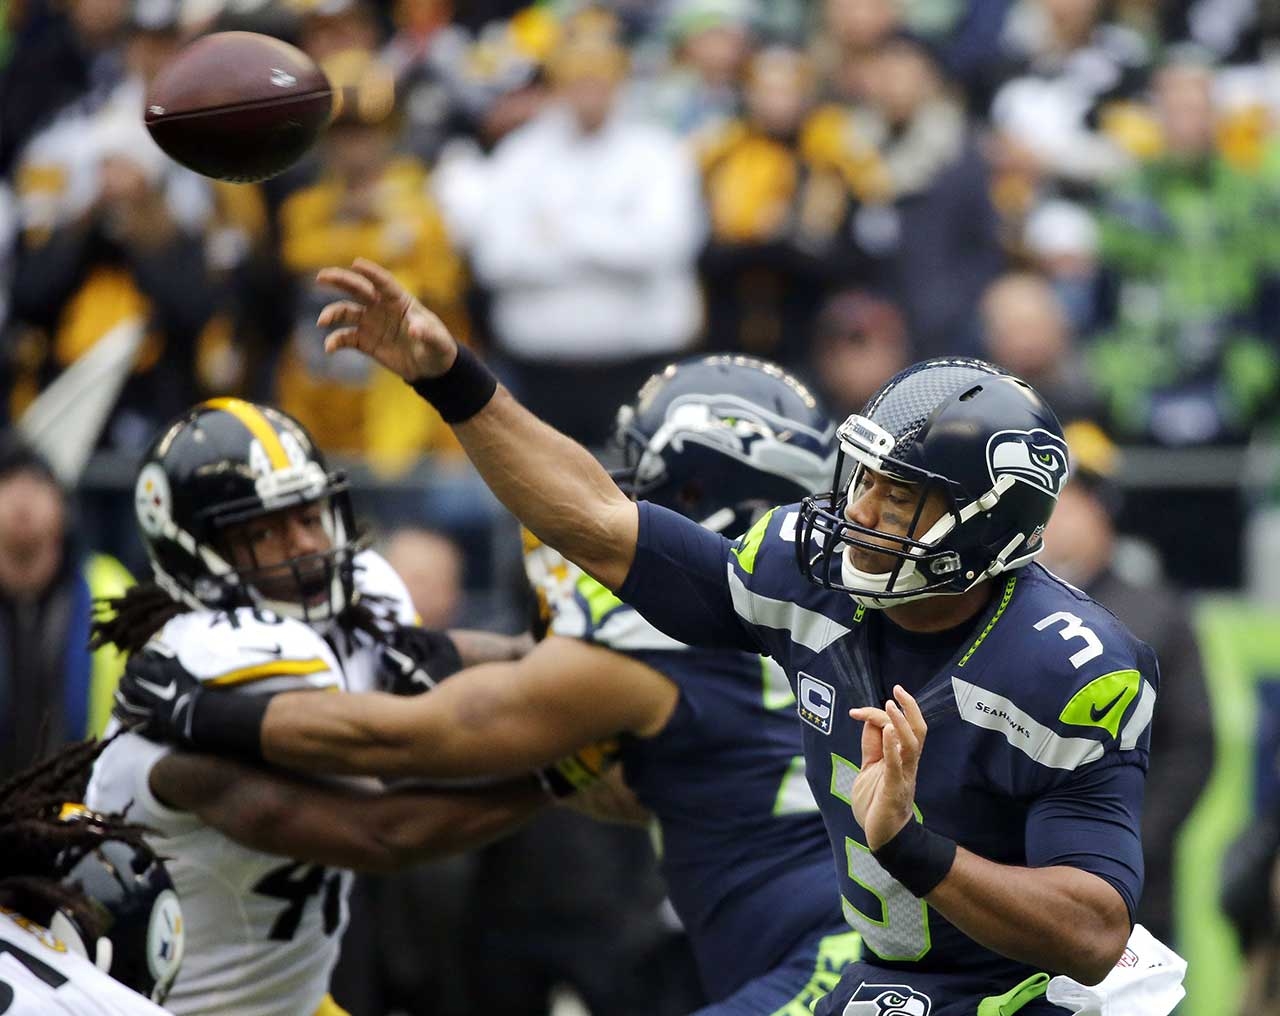 Russell Wilson and two other NFL quarterbacks have played a game on their birthdays during the 2015 season, leading us to wonder how successful has this year's entire crop of QBs been when flinging passes on the big day. Would you believe 10-3? Here's a recap. On the day that he turned 27, Wilson had his greatest game as a Seahawk, throwing a career-high five touchdown passes in a 39-30 win over the Pittsburgh Steelers.